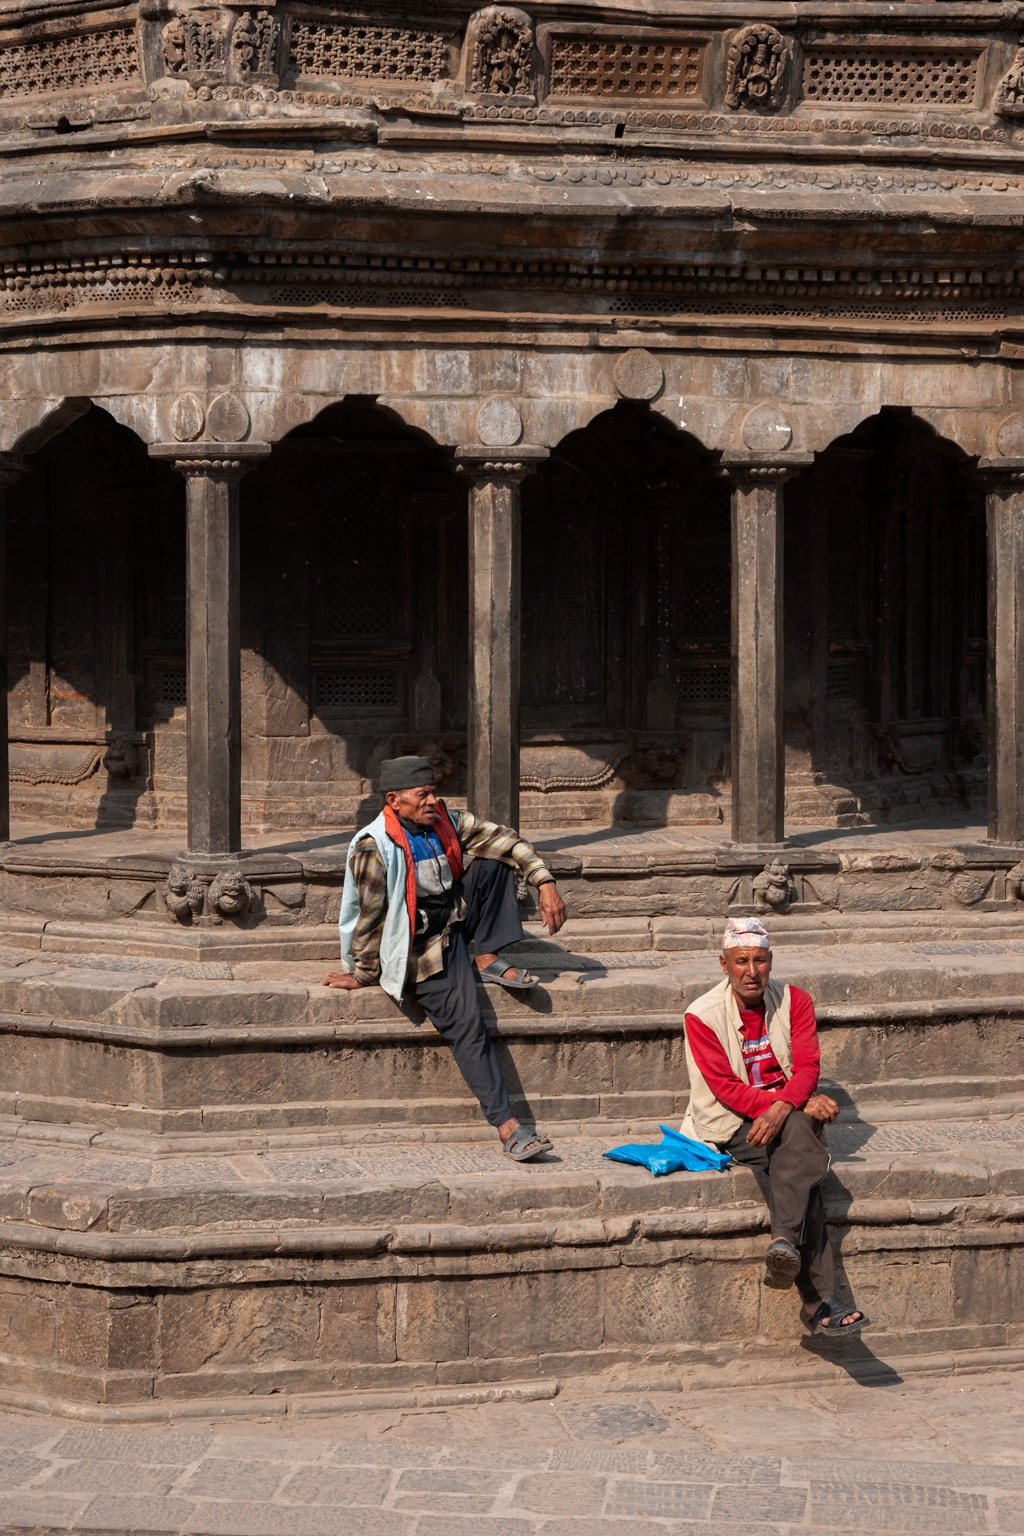 Two Nepalese men seat on the stairs of an ancient Pagoda in Patan Durbar Square. Kathmandu Valley, Nepal.